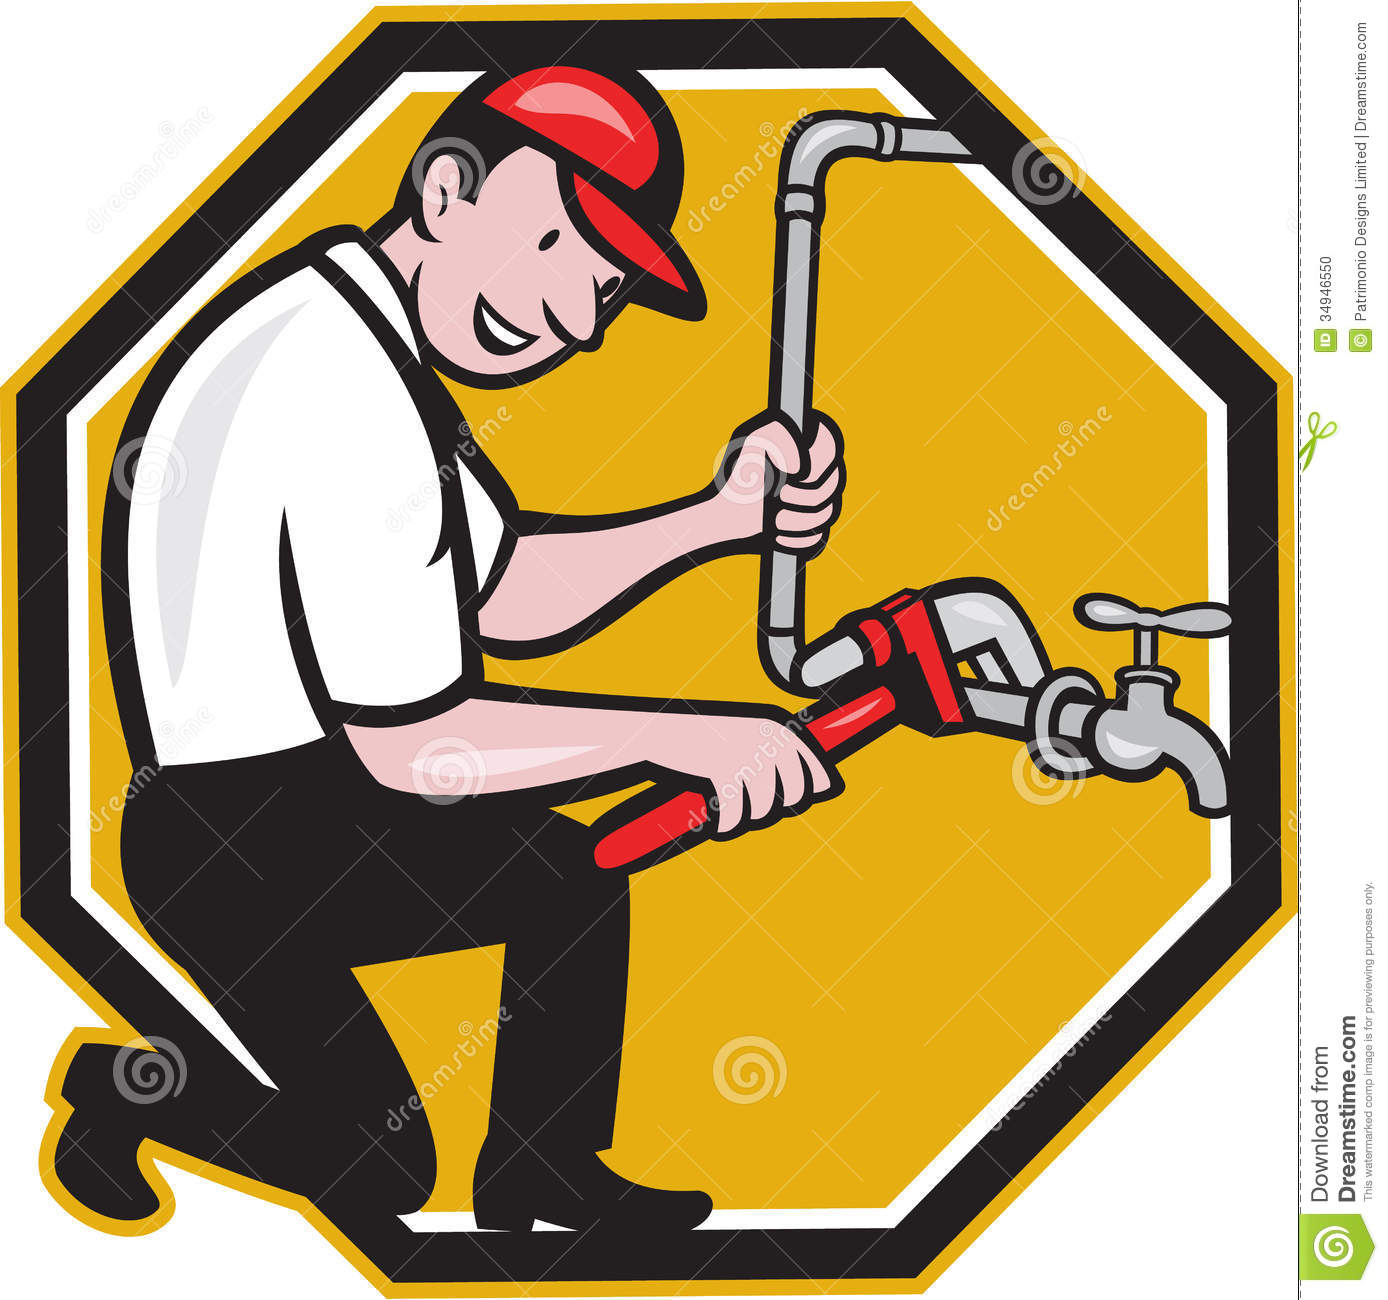 Animated clipart plumbing leak picture royalty free download Animated clipart plumbing leak - ClipartFest picture royalty free download